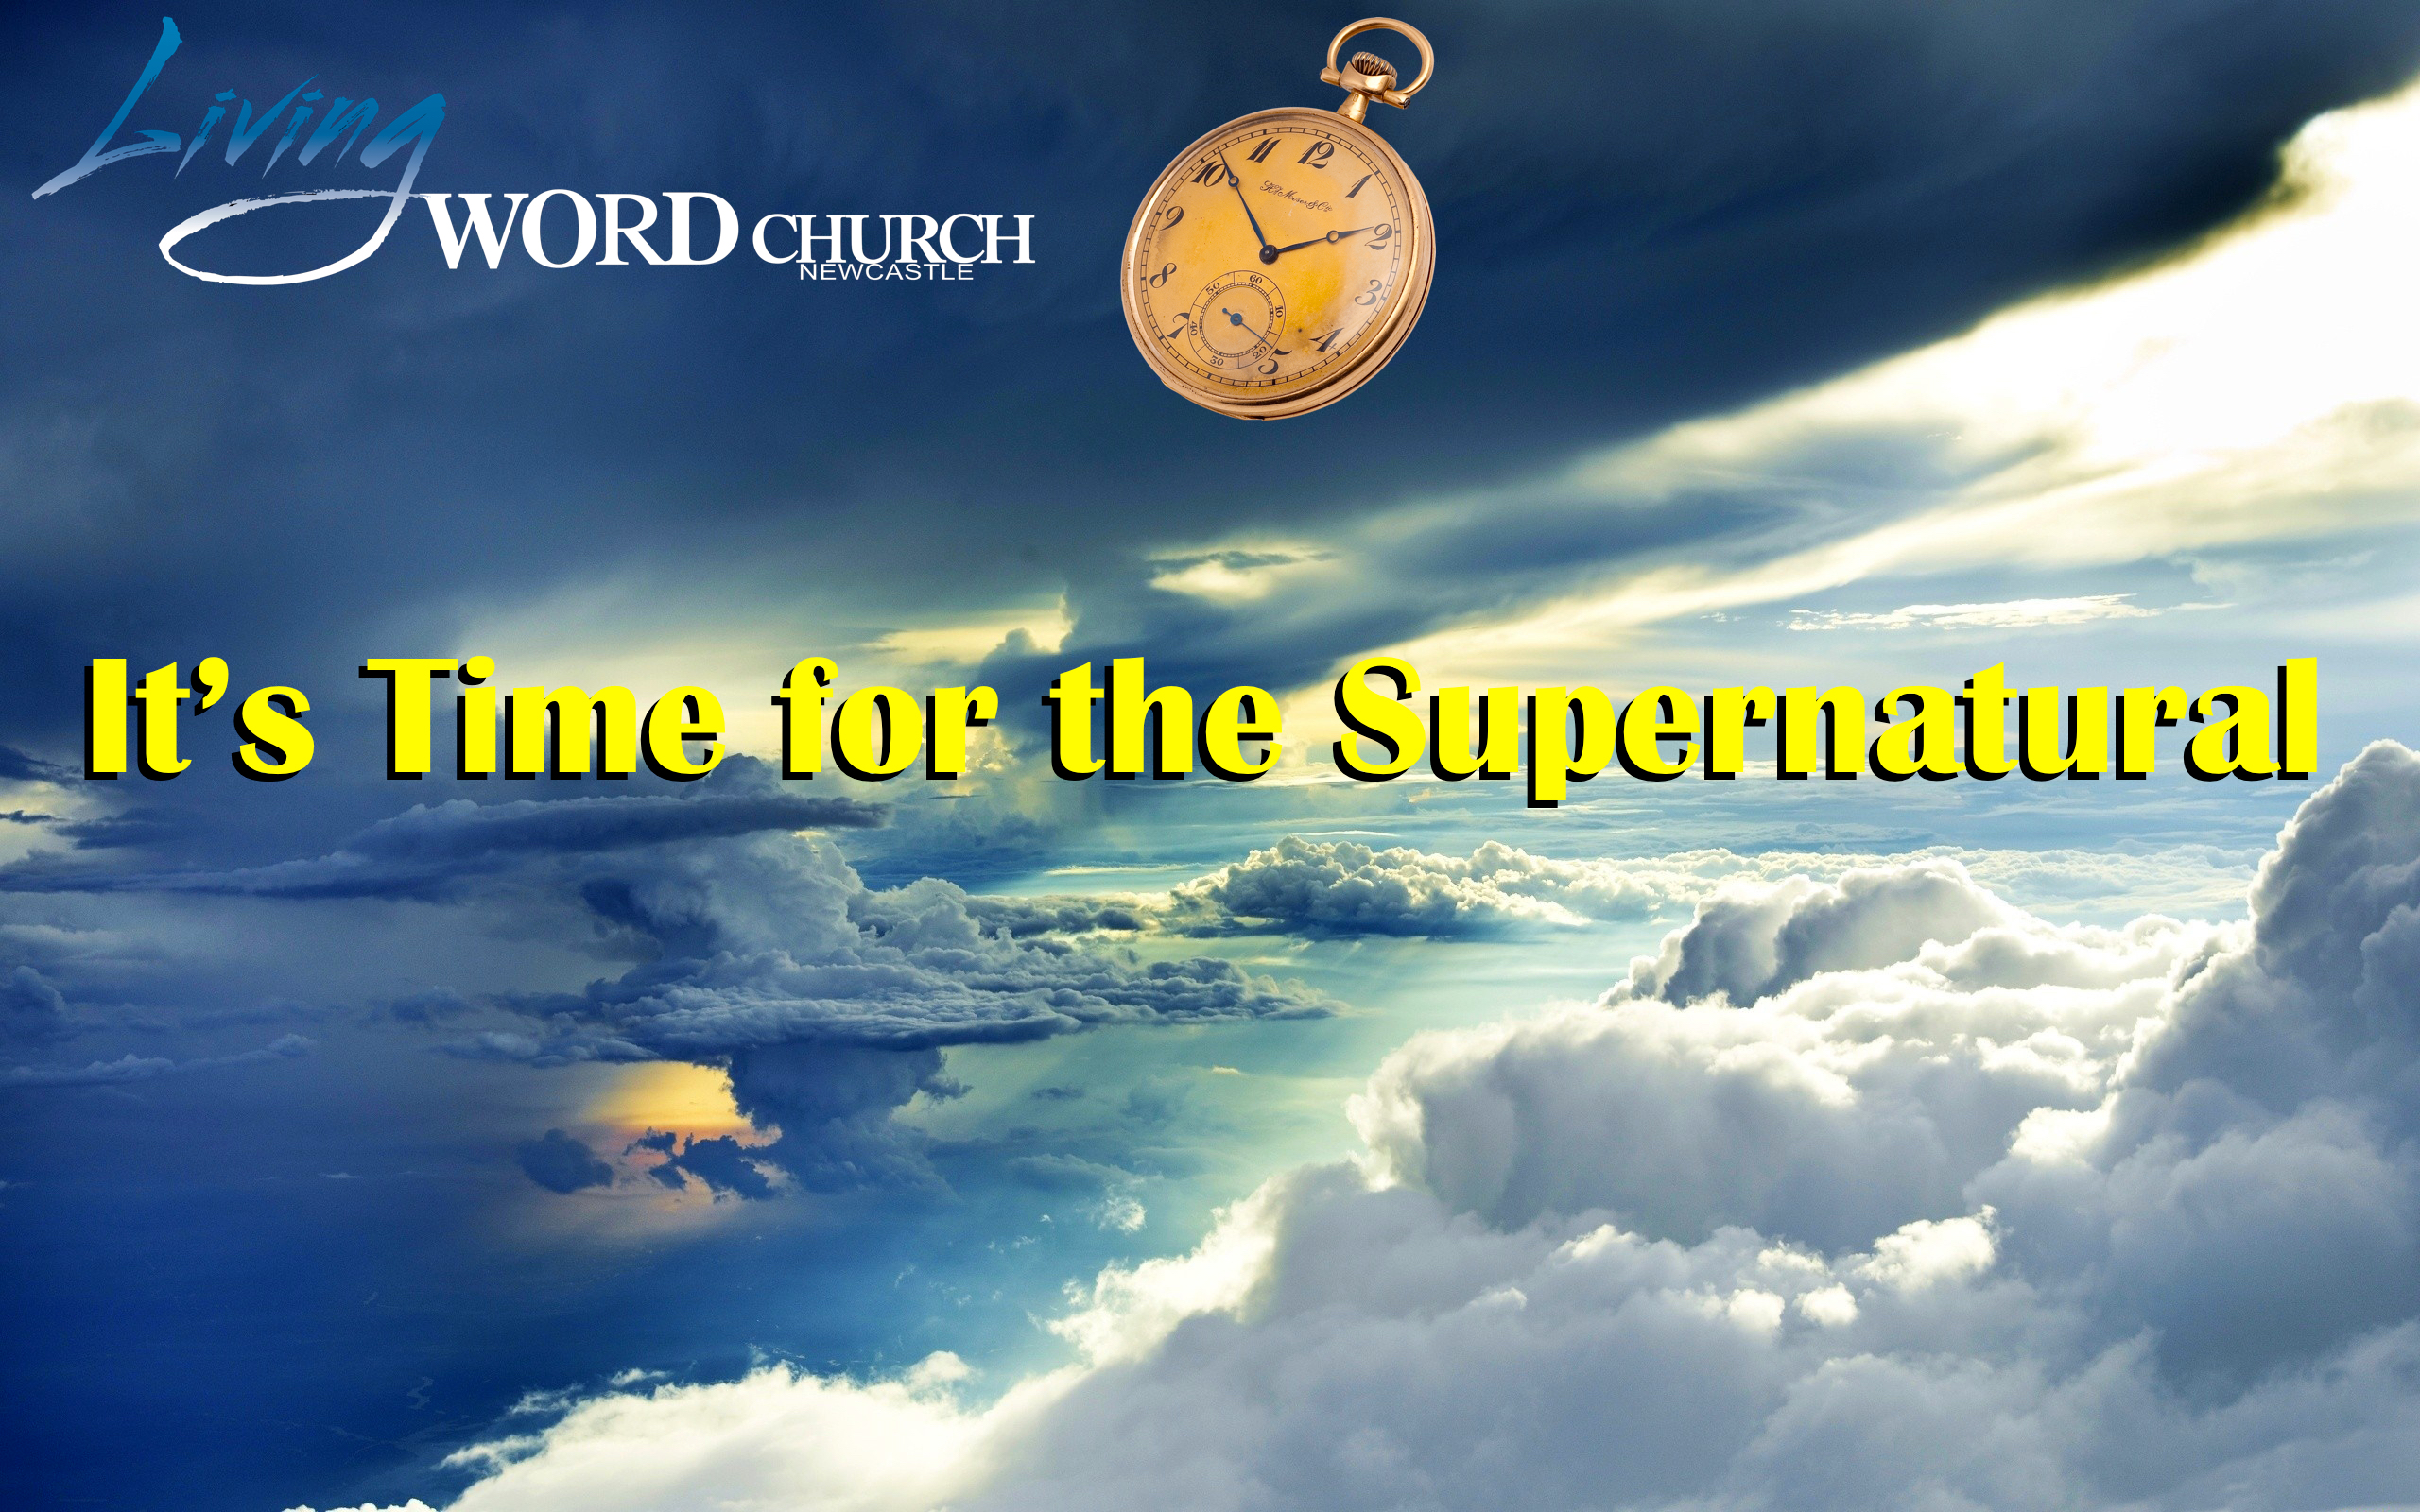 It's Time for the Supernatural (Part 2)